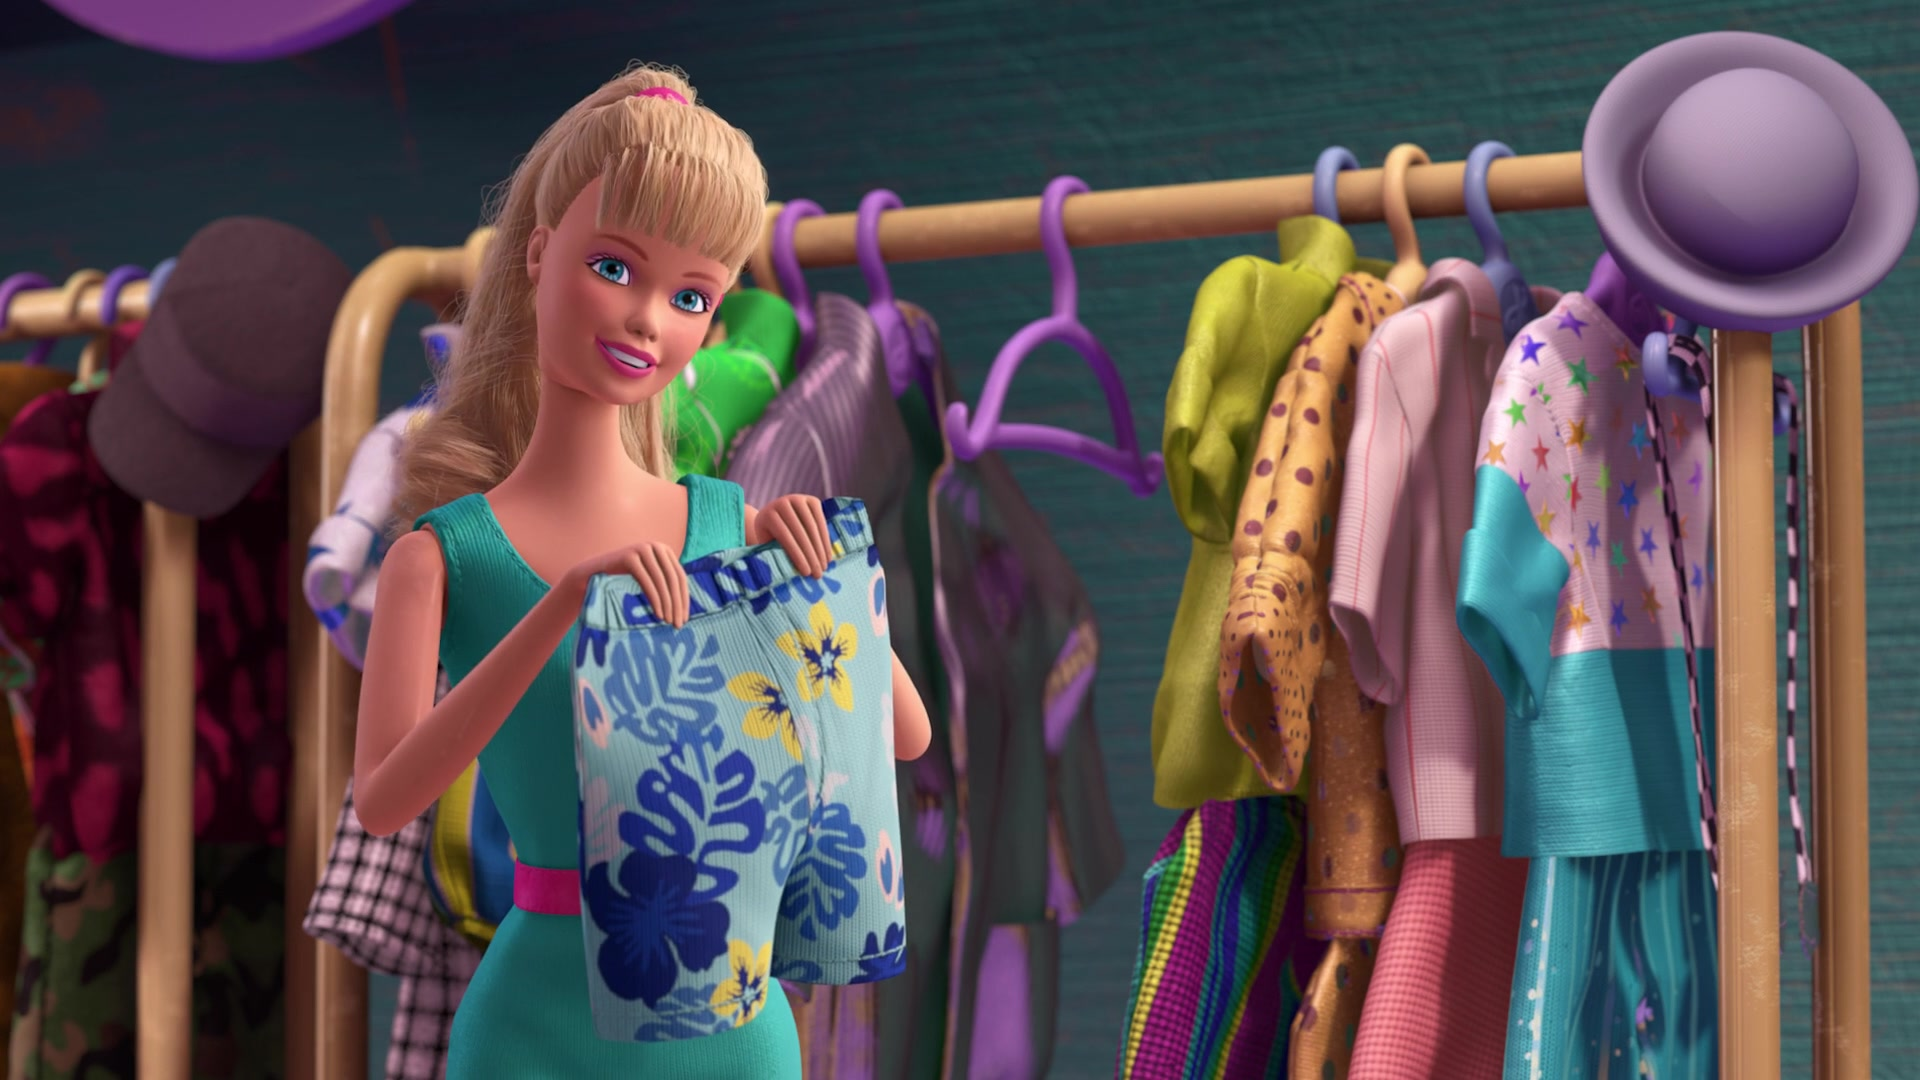 barbie doll in toy story 3 2010 animation movie